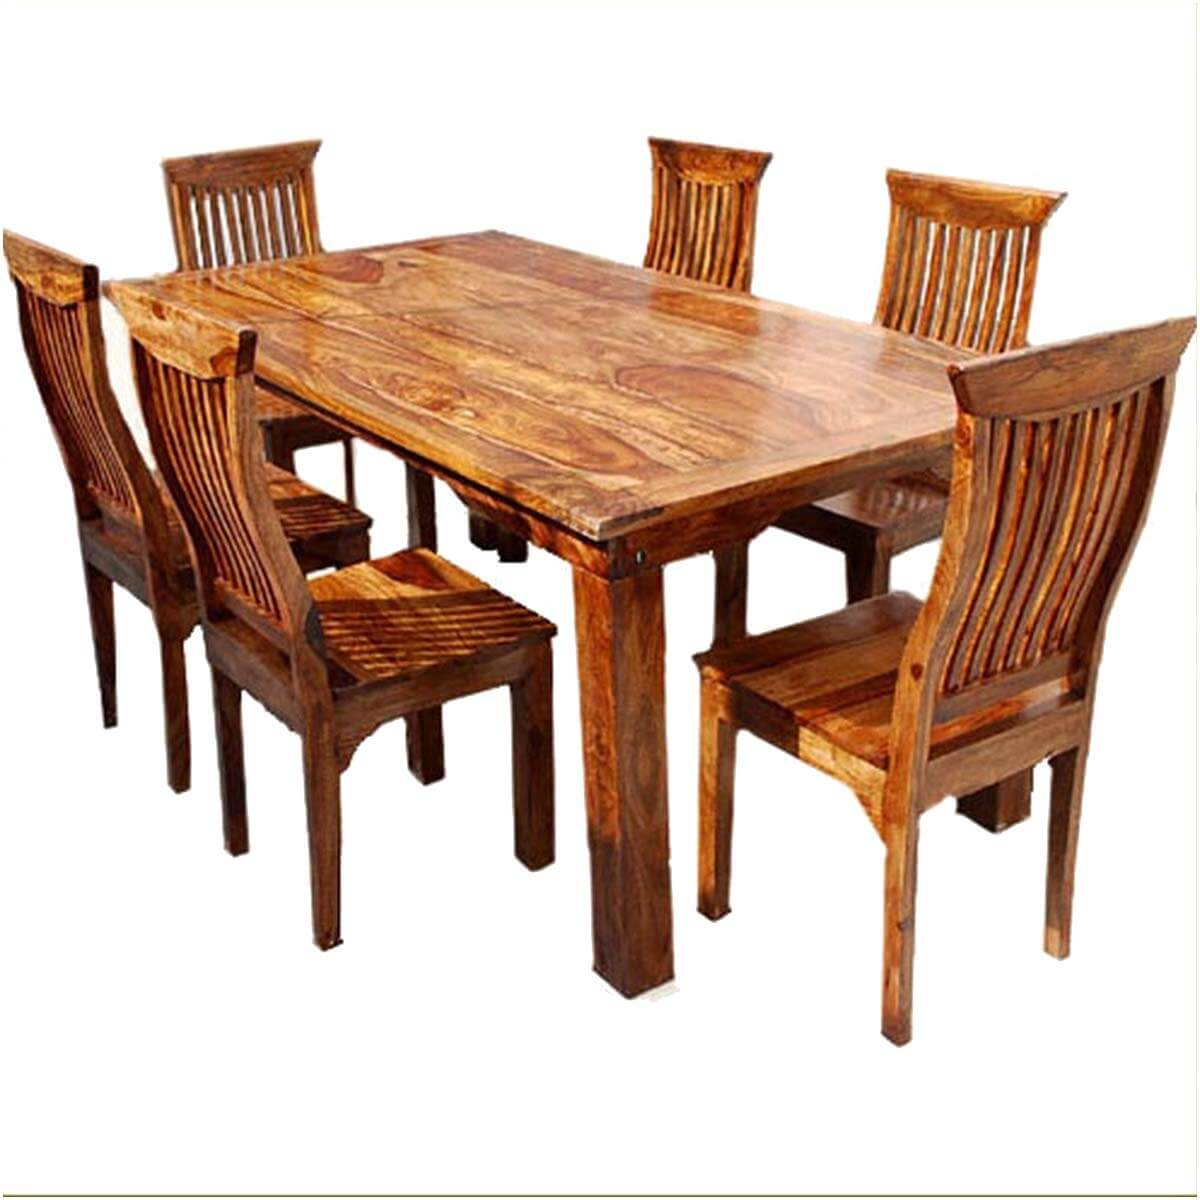 Rustic Wooden Dining Room Table ~ Dallas ranch solid wood rustic dining table chairs hutch set